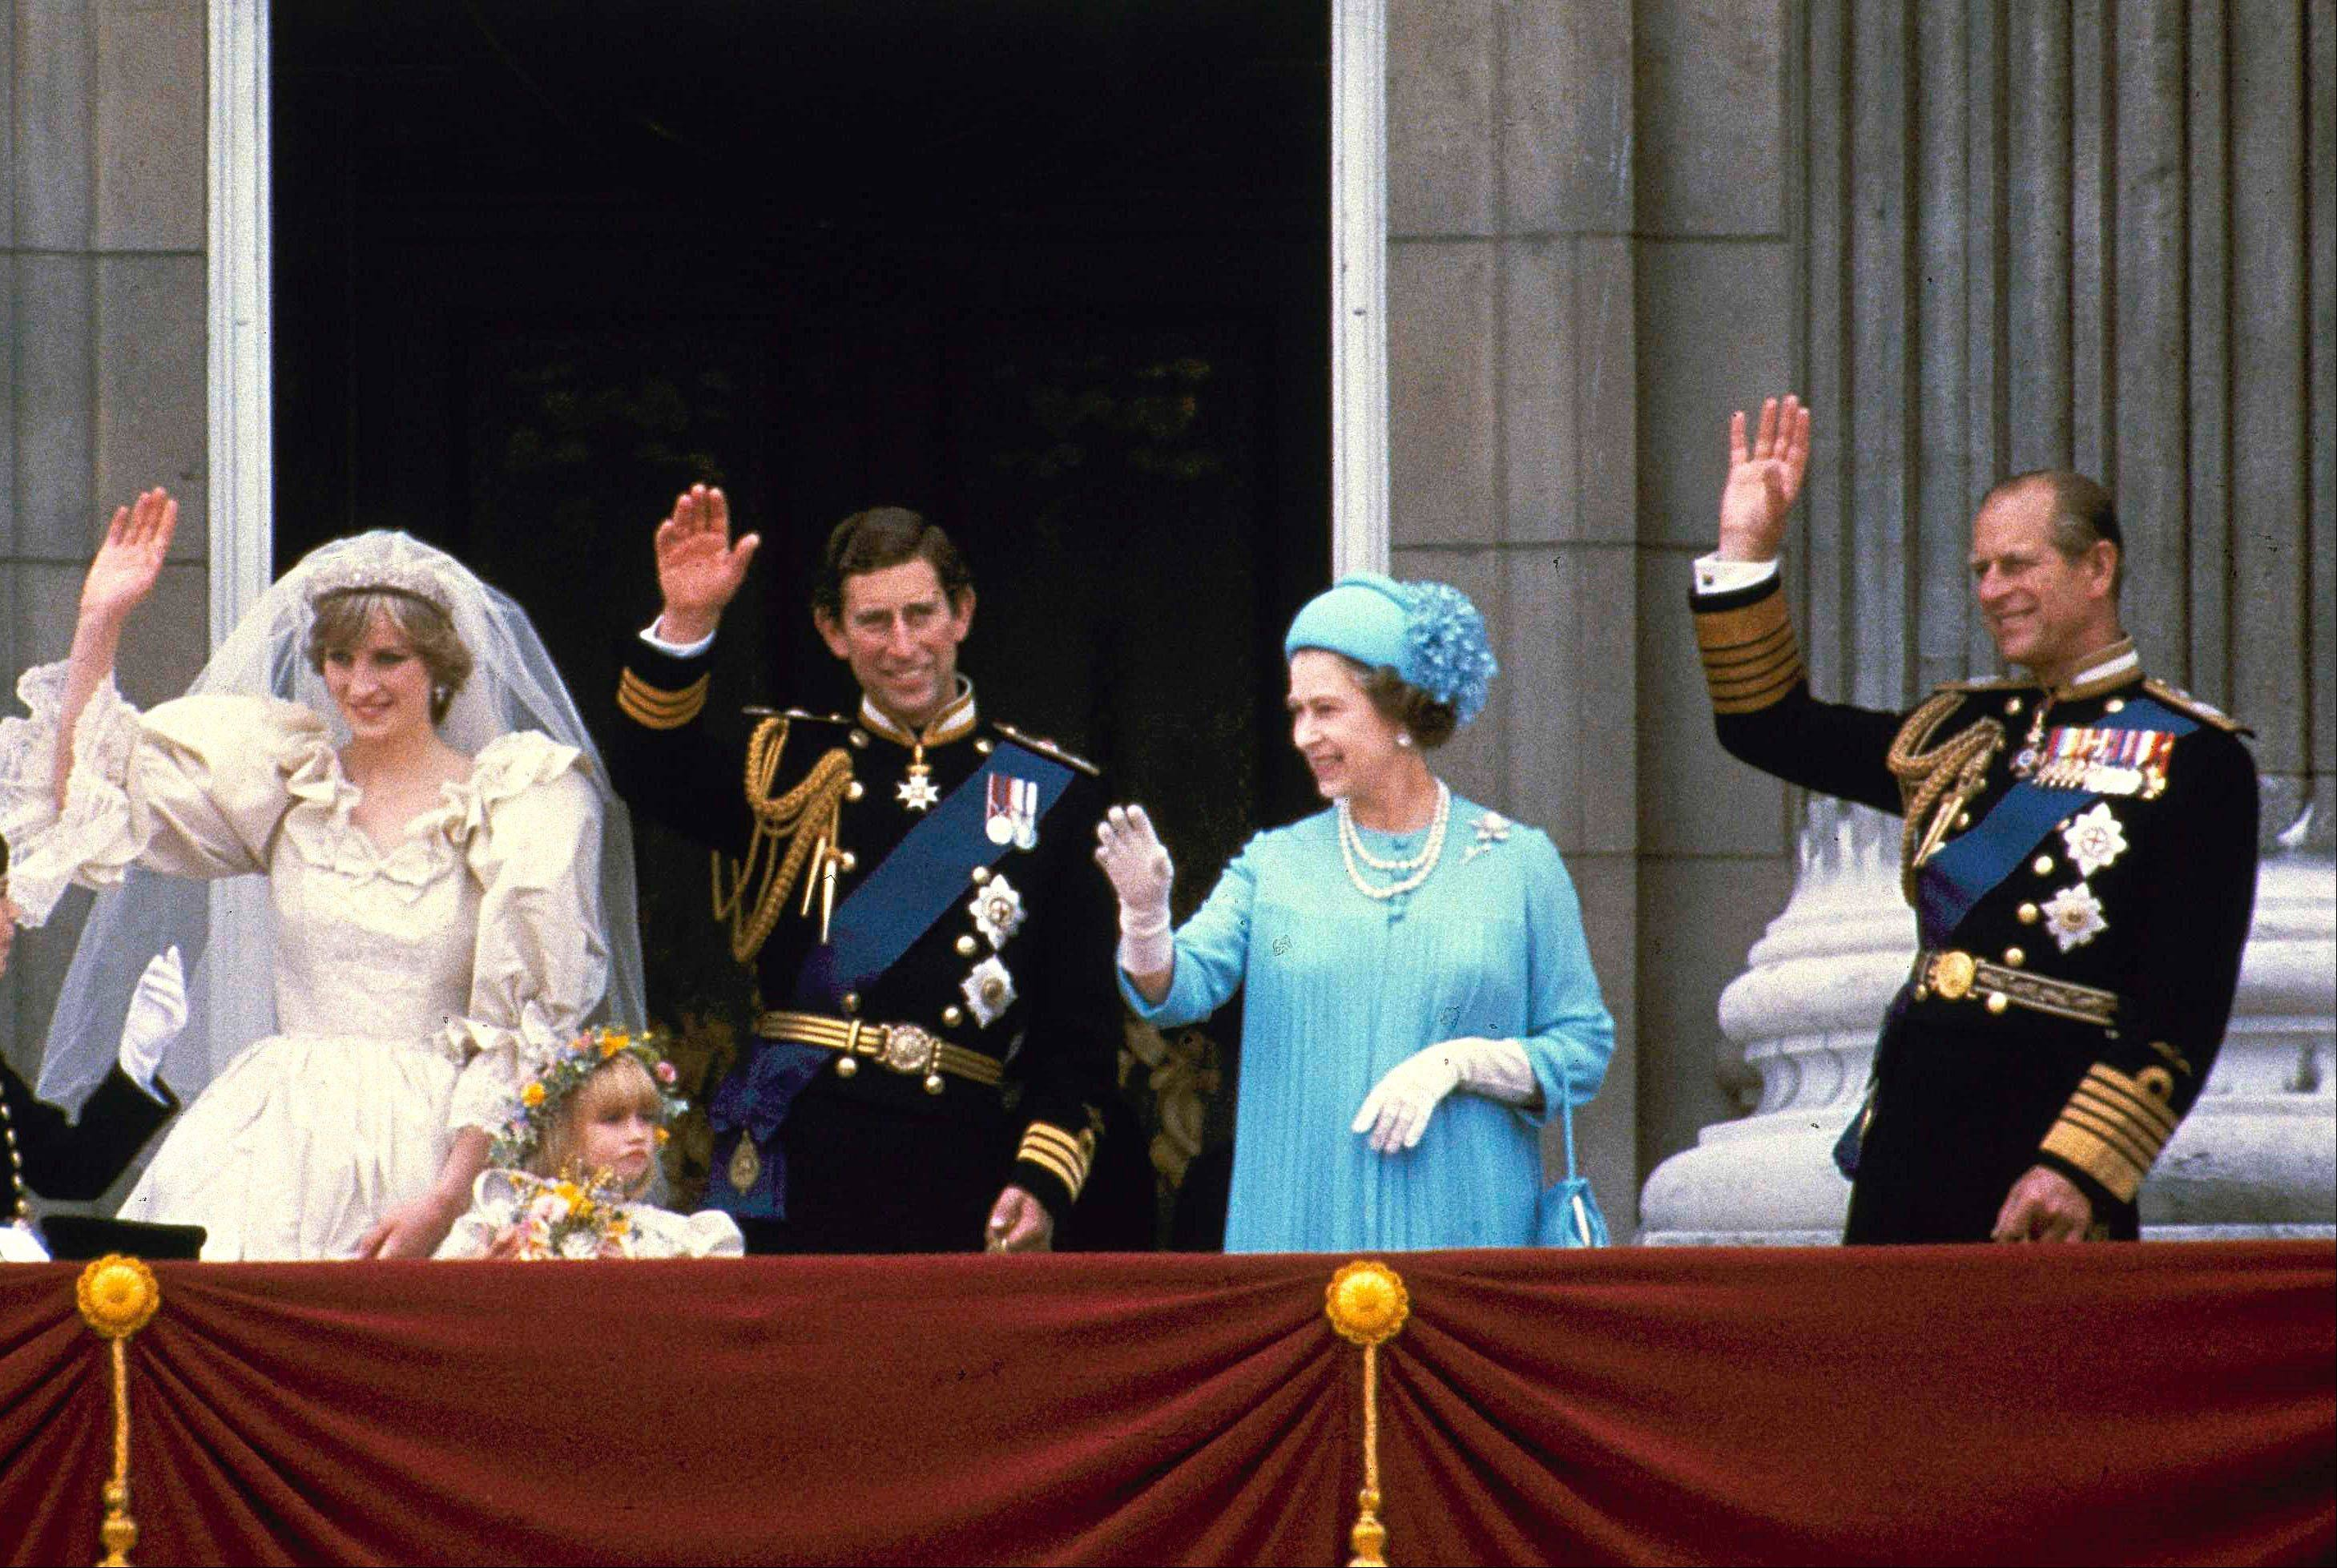 In this July 29, 1981, photo, Prince Charles and his bride Diana, Princess of Wales, and his parents, Queen Elizabeth II and Prince Phillip, wave from the balcony of Buckingham Palace in London after their marriage at St. Paul's Catheral.